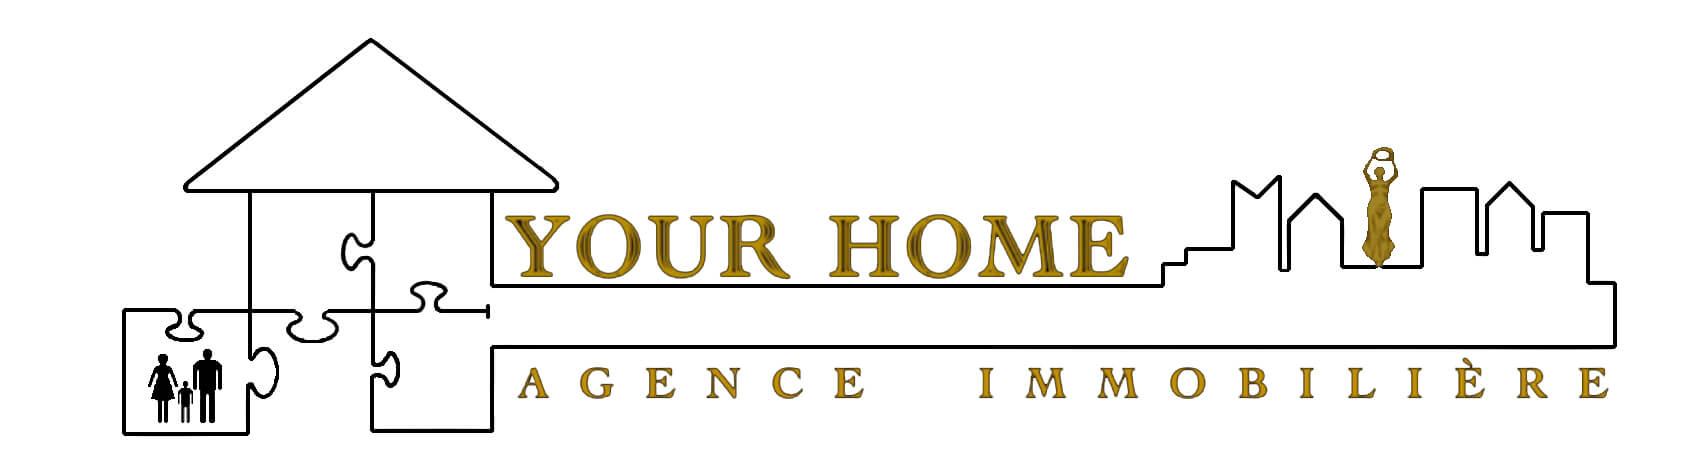 Your Home Immobilier